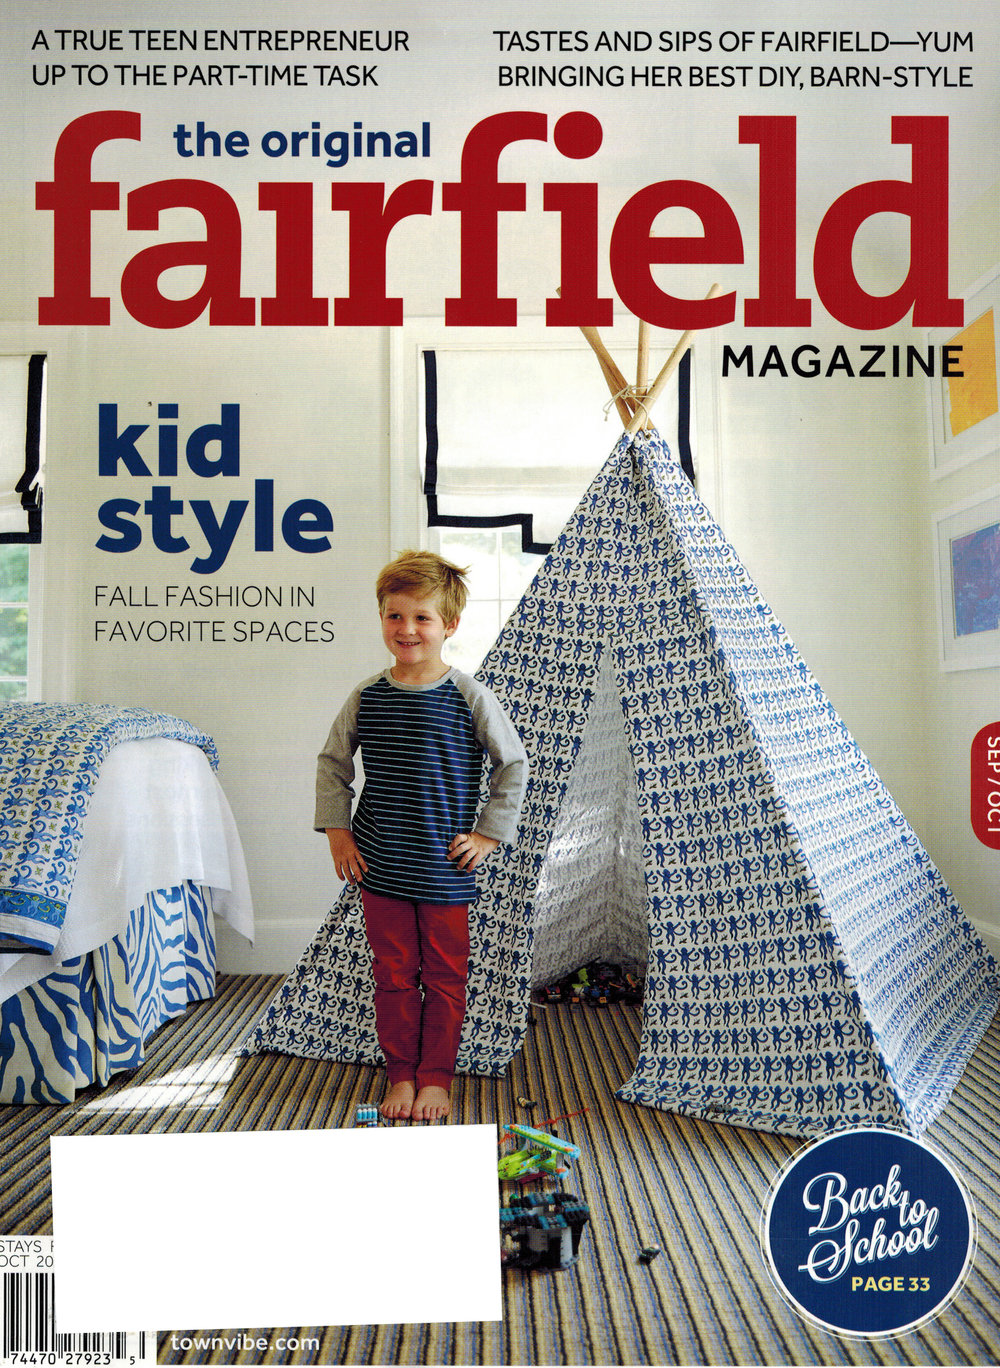 Fairfield_Cover 1.jpg